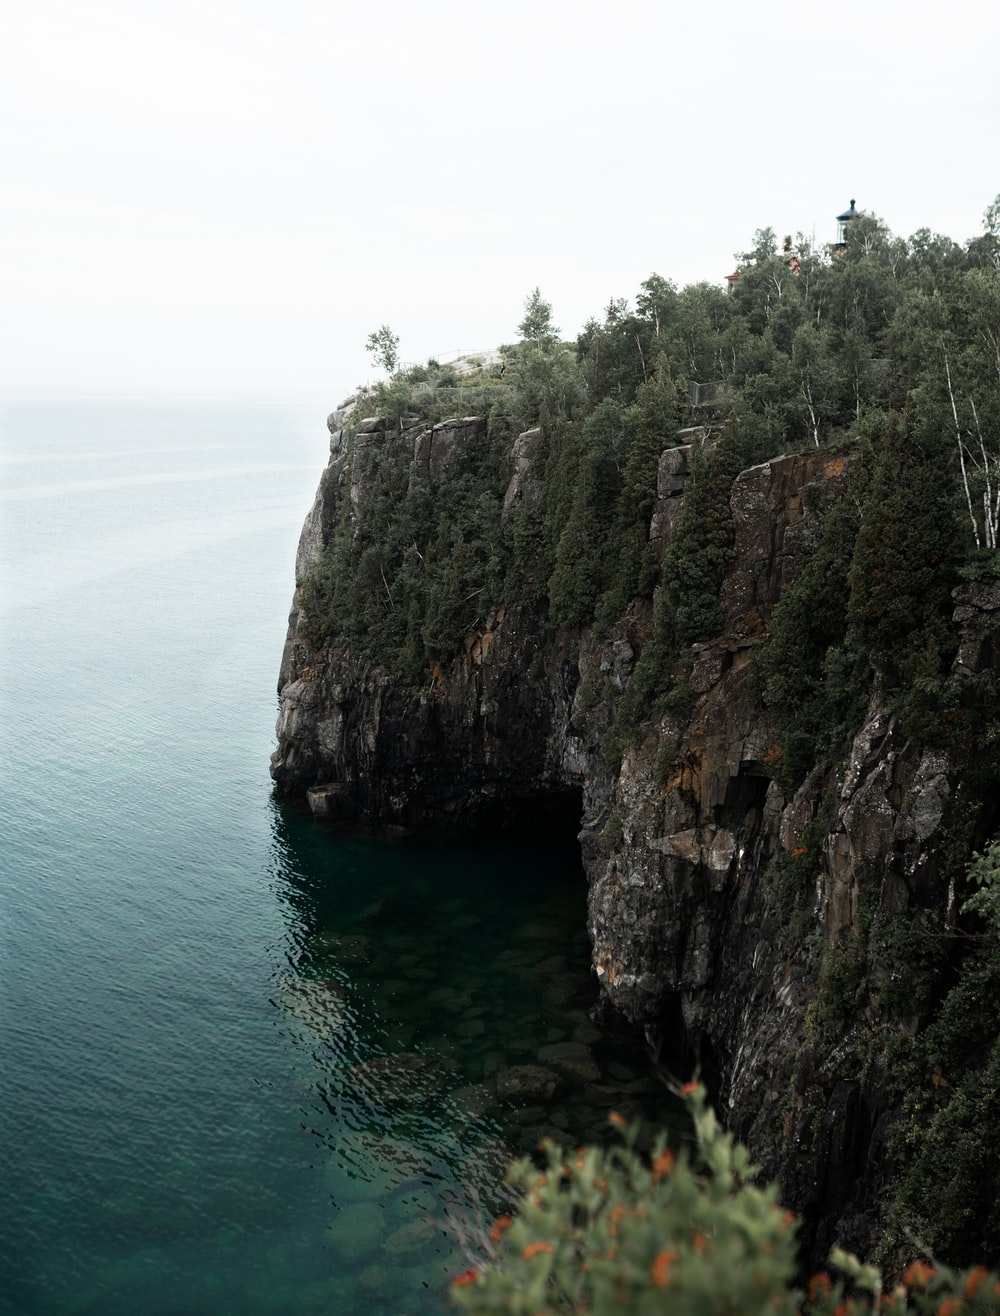 brown and green cliff beside body of water during daytime